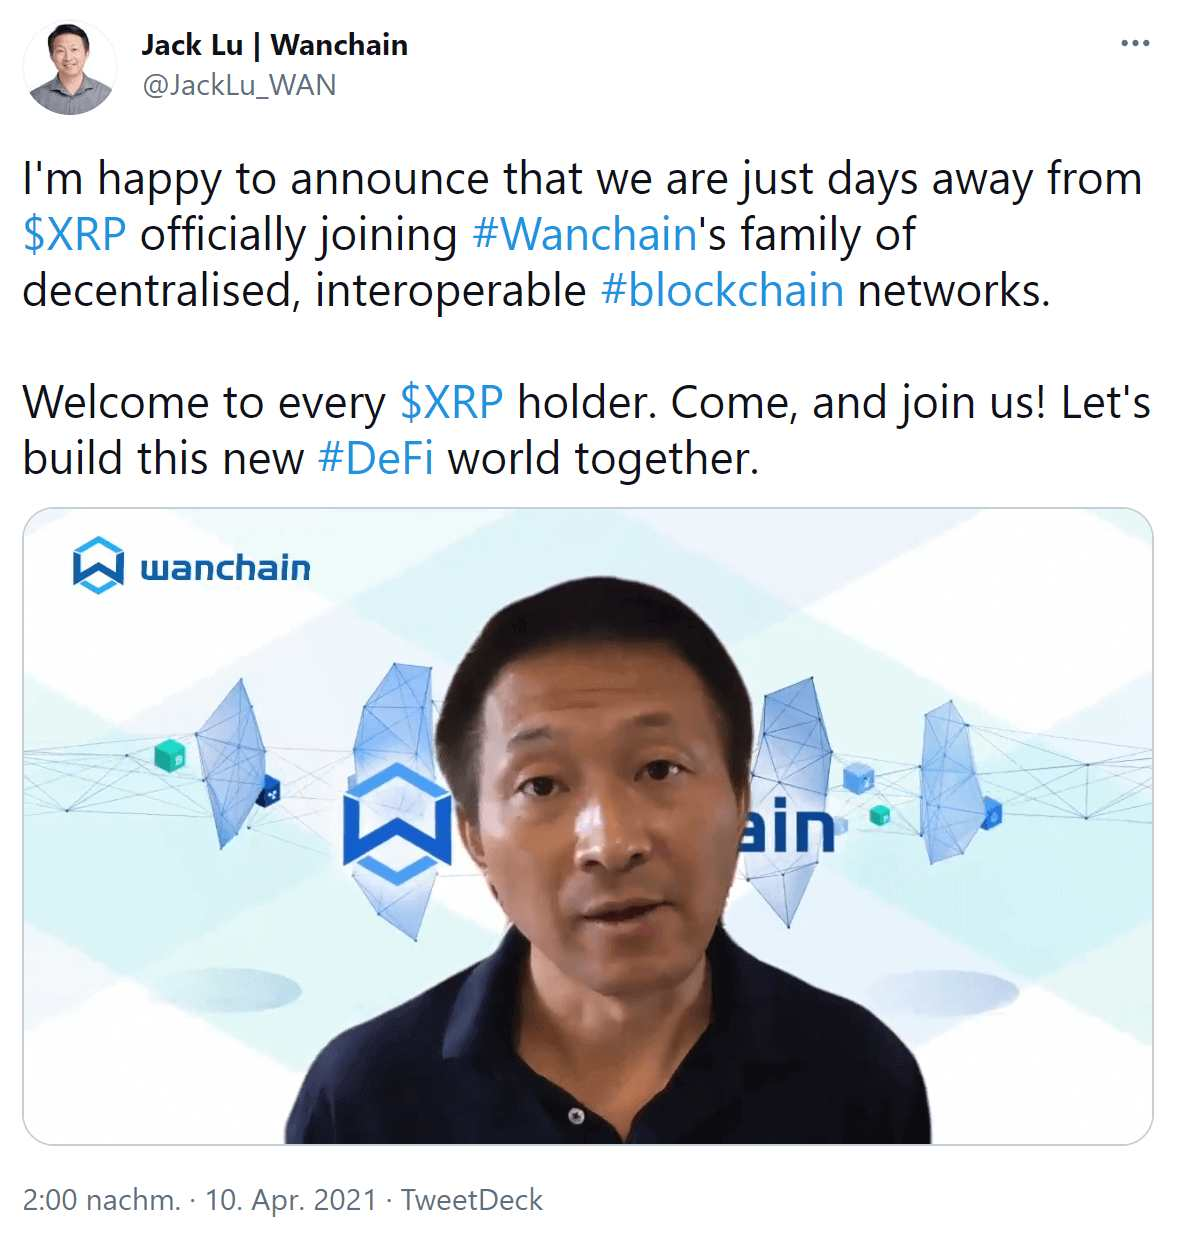 DeFi News Wanchain Tweet